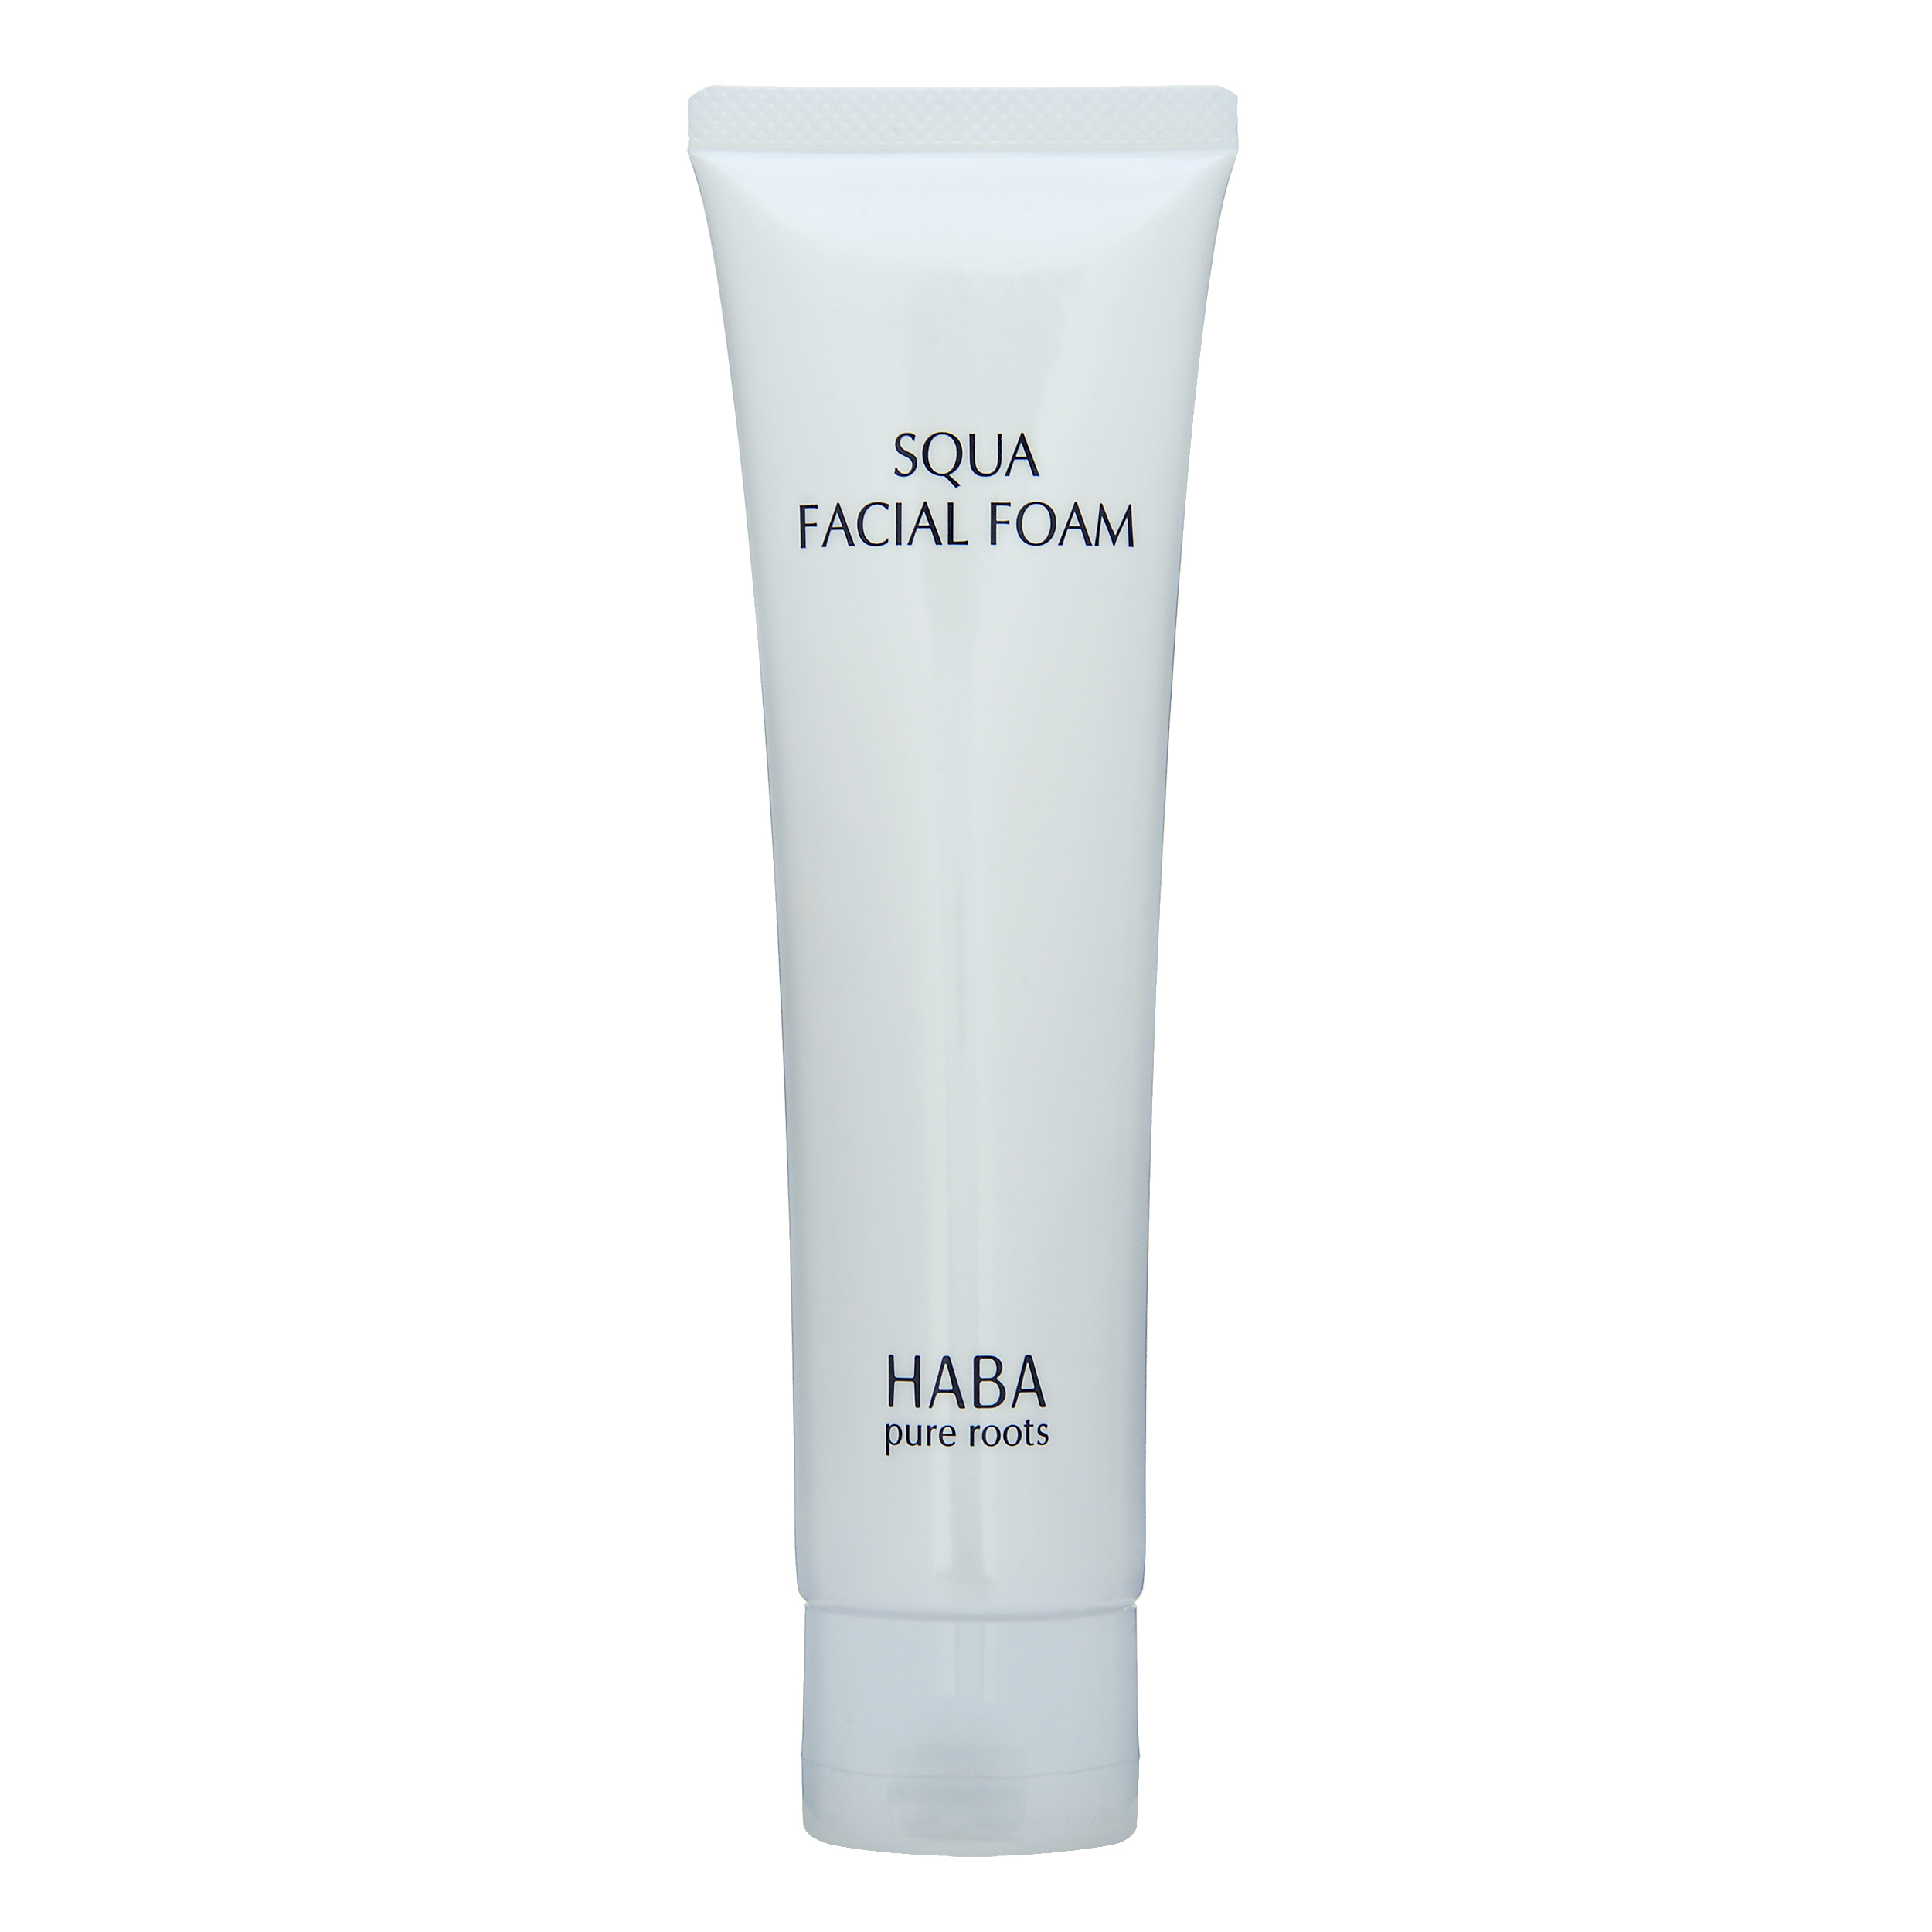 HABA Pure Roots Squa Facial Foam 100g,